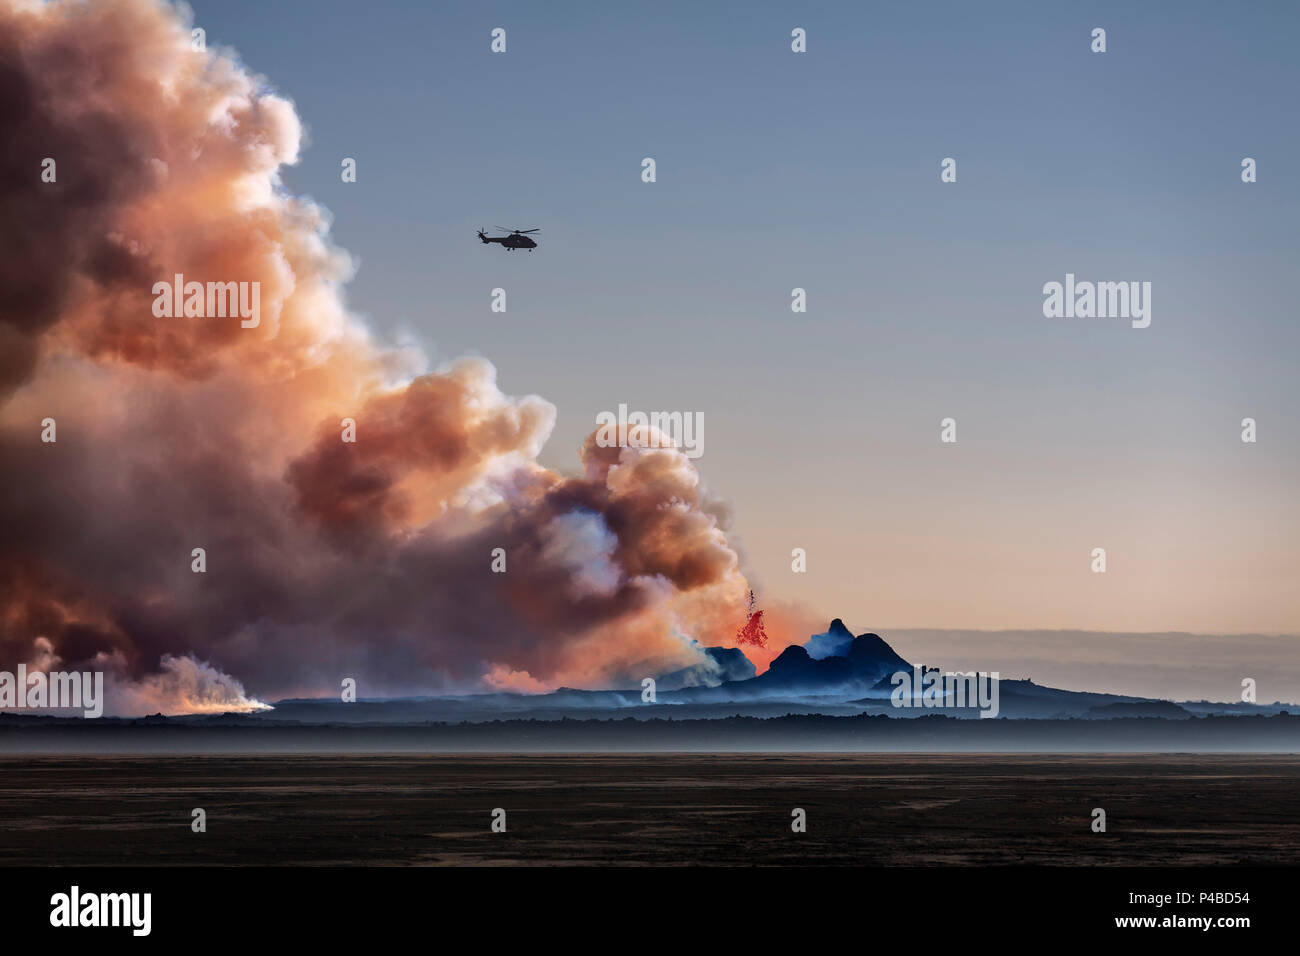 Helicopter flying over the volcano eruption at the Holuhruan Fissure, Bardarbunga Volcano, Iceland. August 29, 2014 a fissure eruption started in Holuhraun at the northern end of a magma intrusion, which had moved progressively north, from the Bardarbunga volcano, picture Date: Sept 20, 2014 - Stock Image